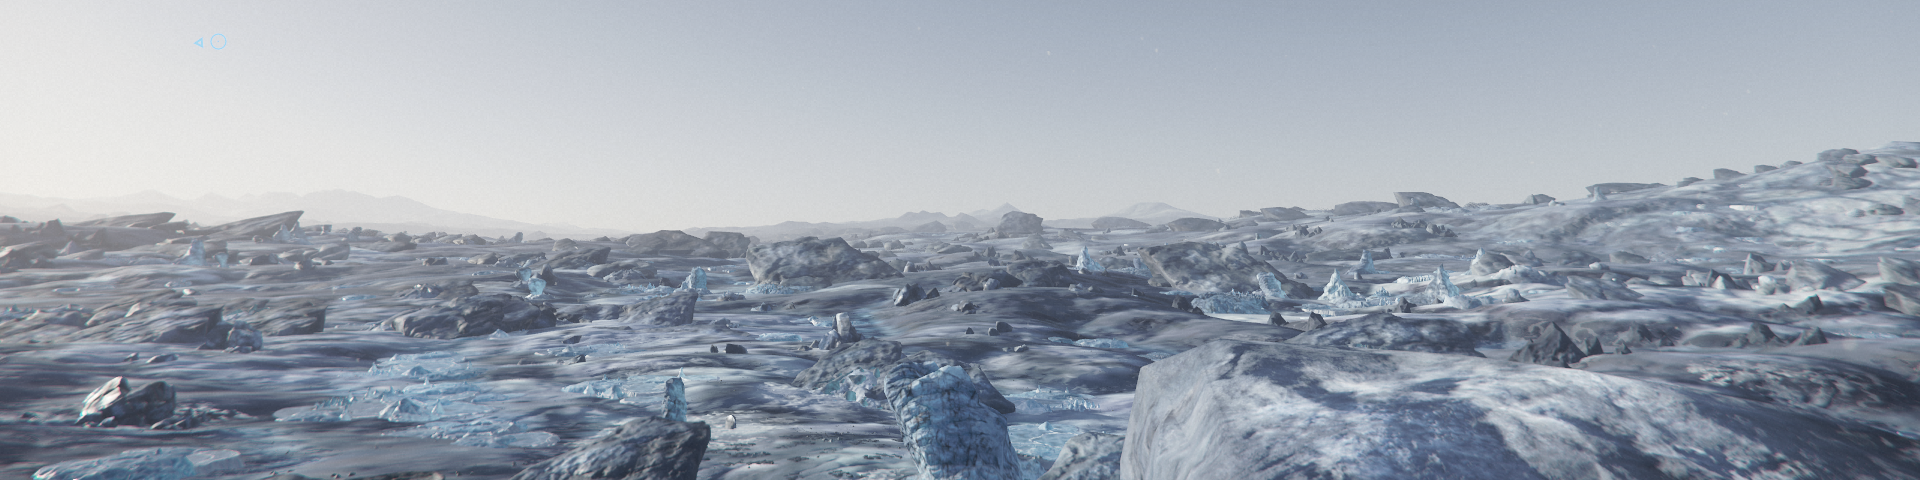 A view of the desolate, broken Lyria icescape; ice ablating in the wind, only to freeze into an icy fog in spite of the sun.